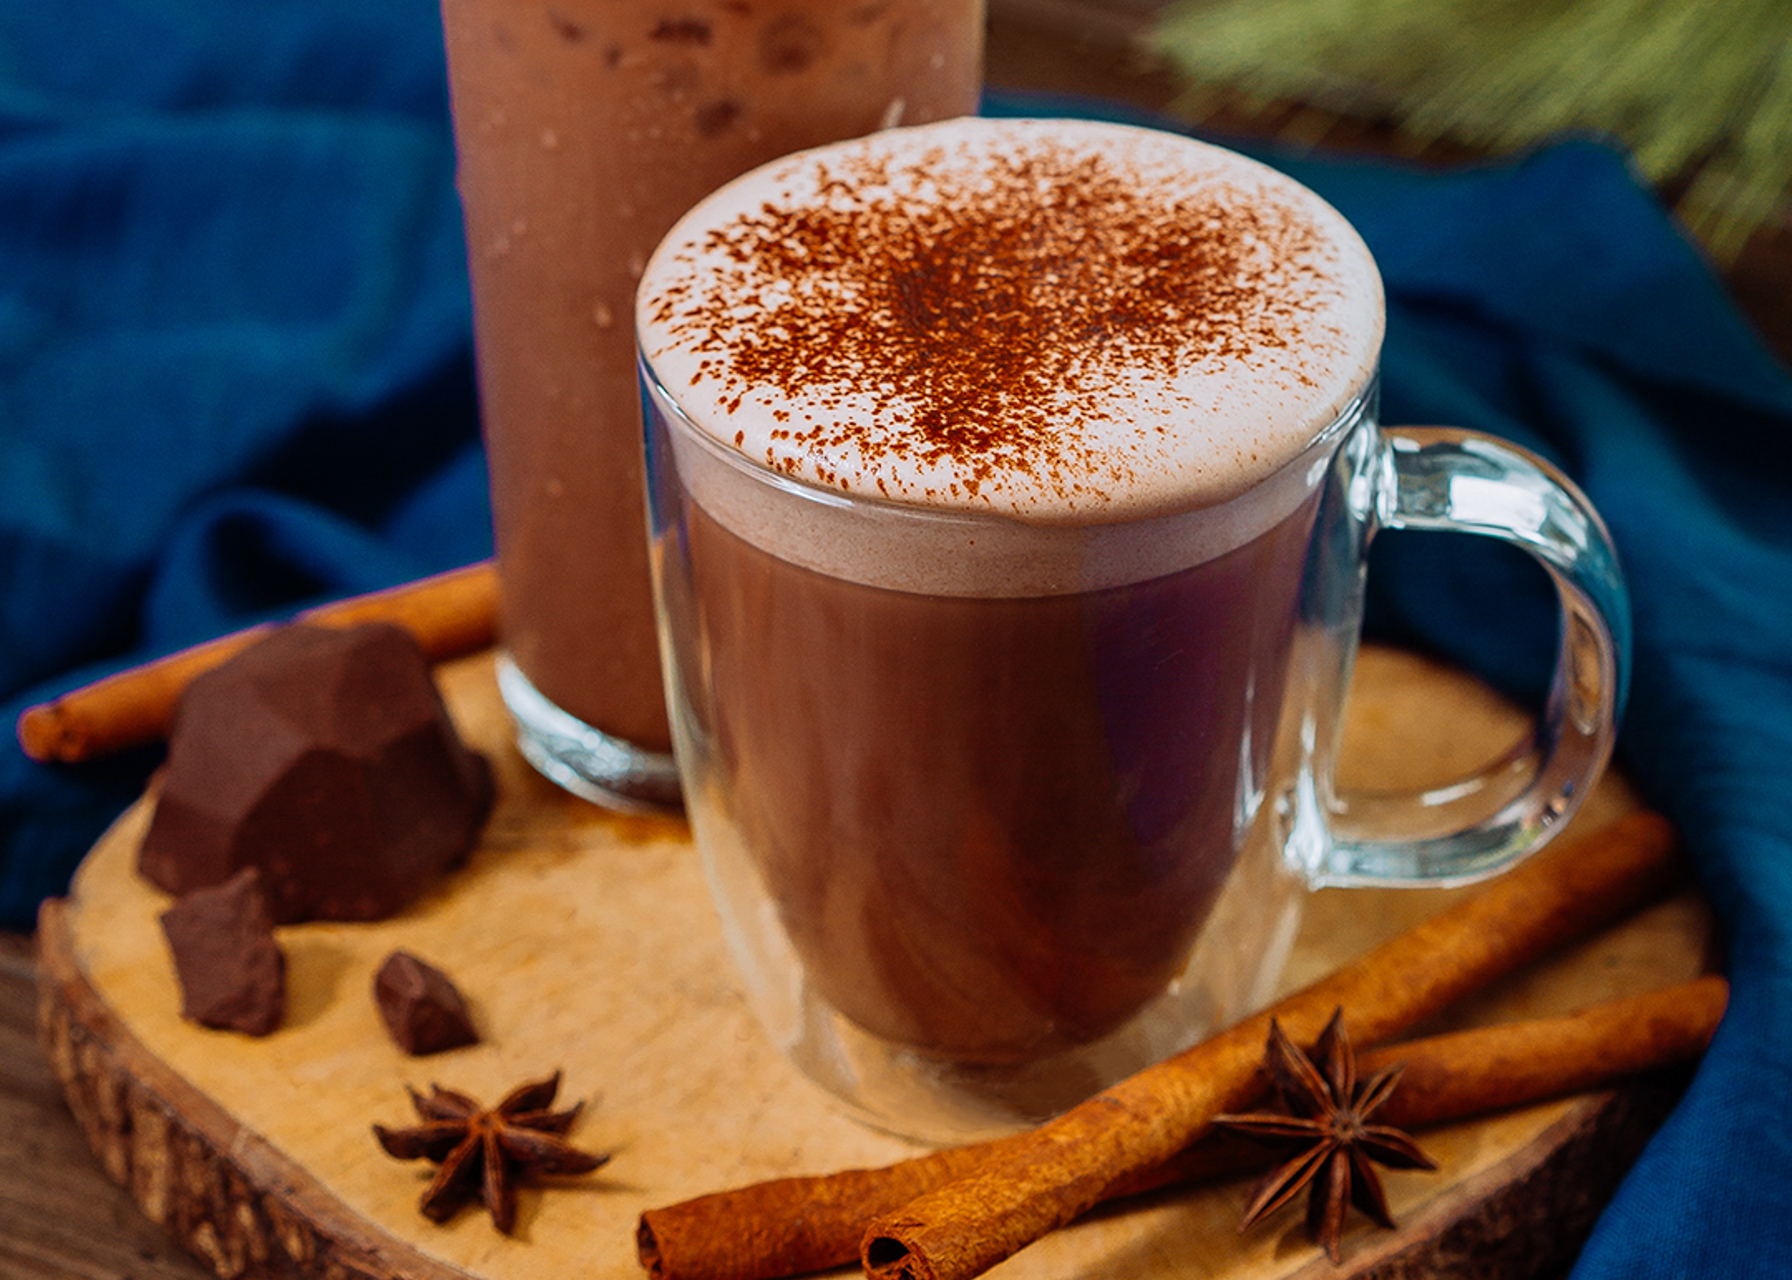 CBTL's Dark Chocolate Chai Latte Is A Hug In A Cup